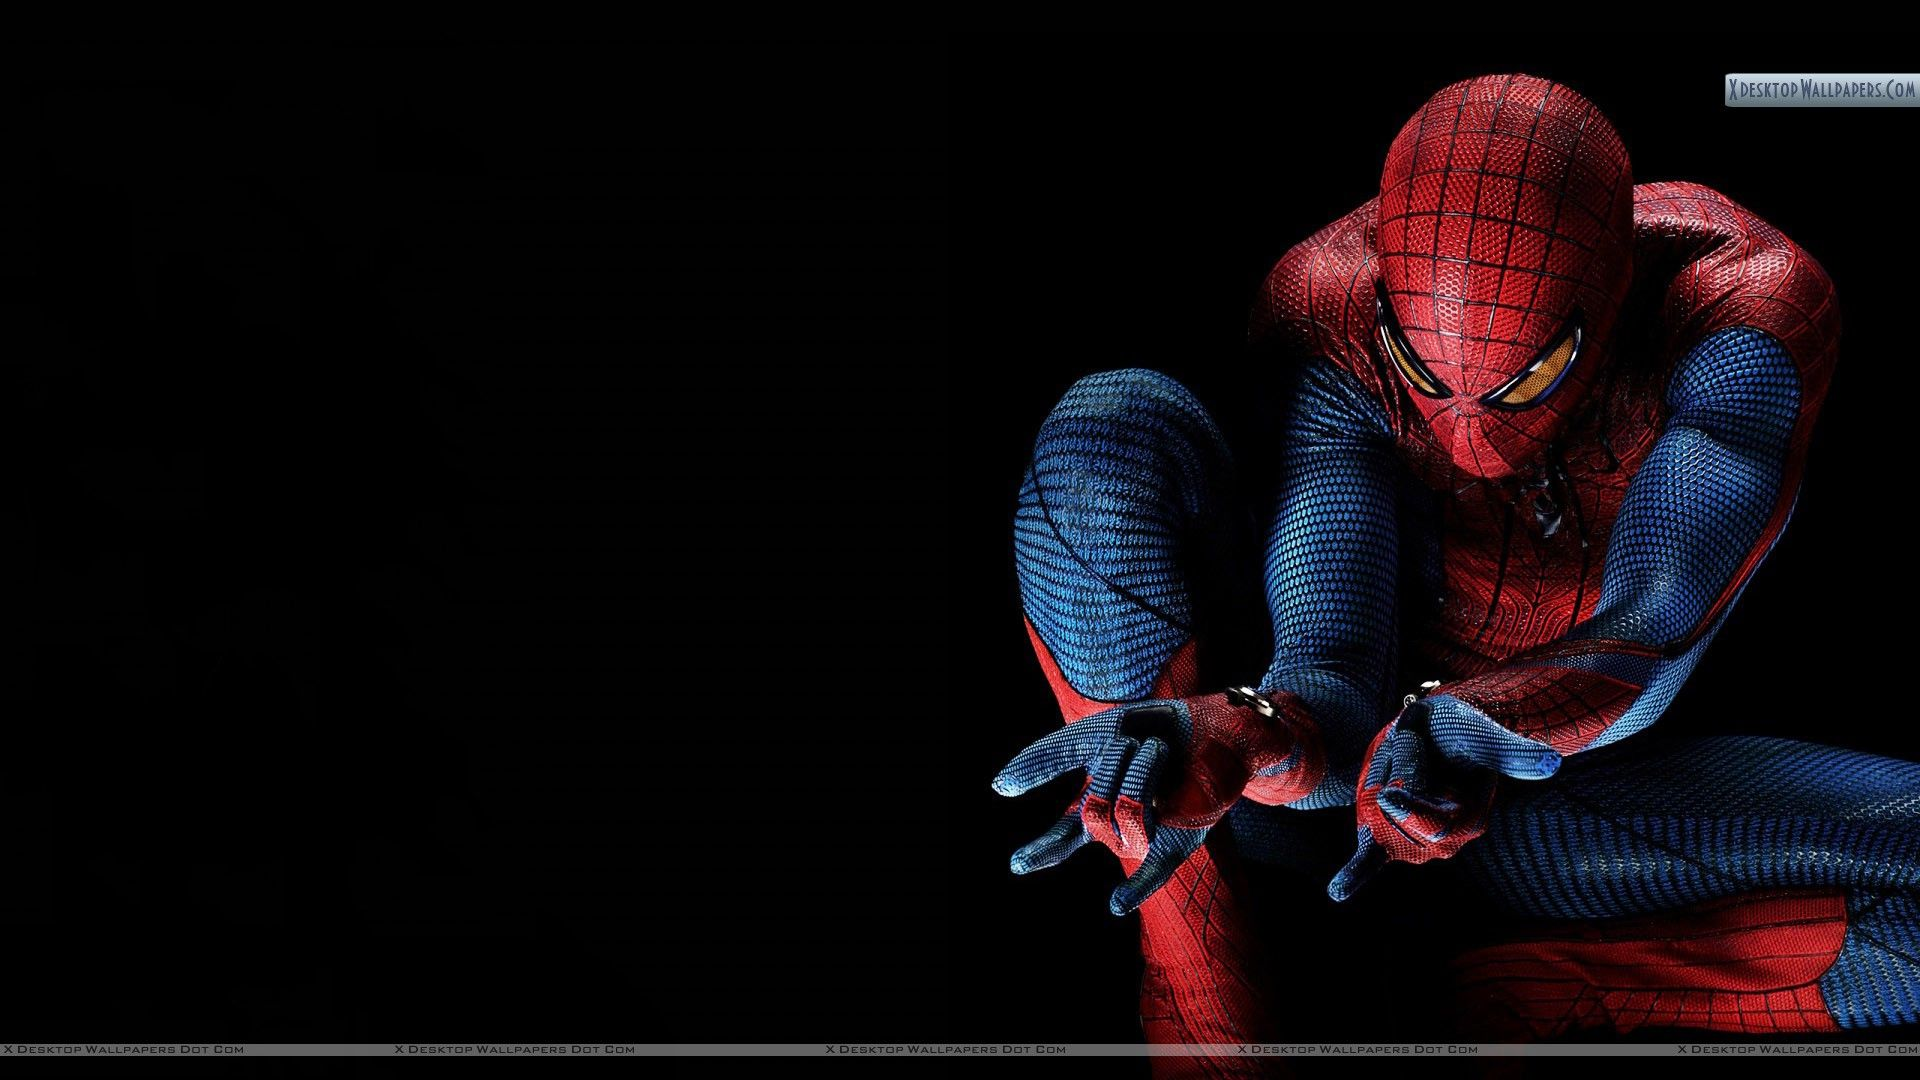 Amazing Wallpaper High Resolution Spiderman - 759b5dc967fd459f31d48b40304a9d24  Graphic_23787.jpg